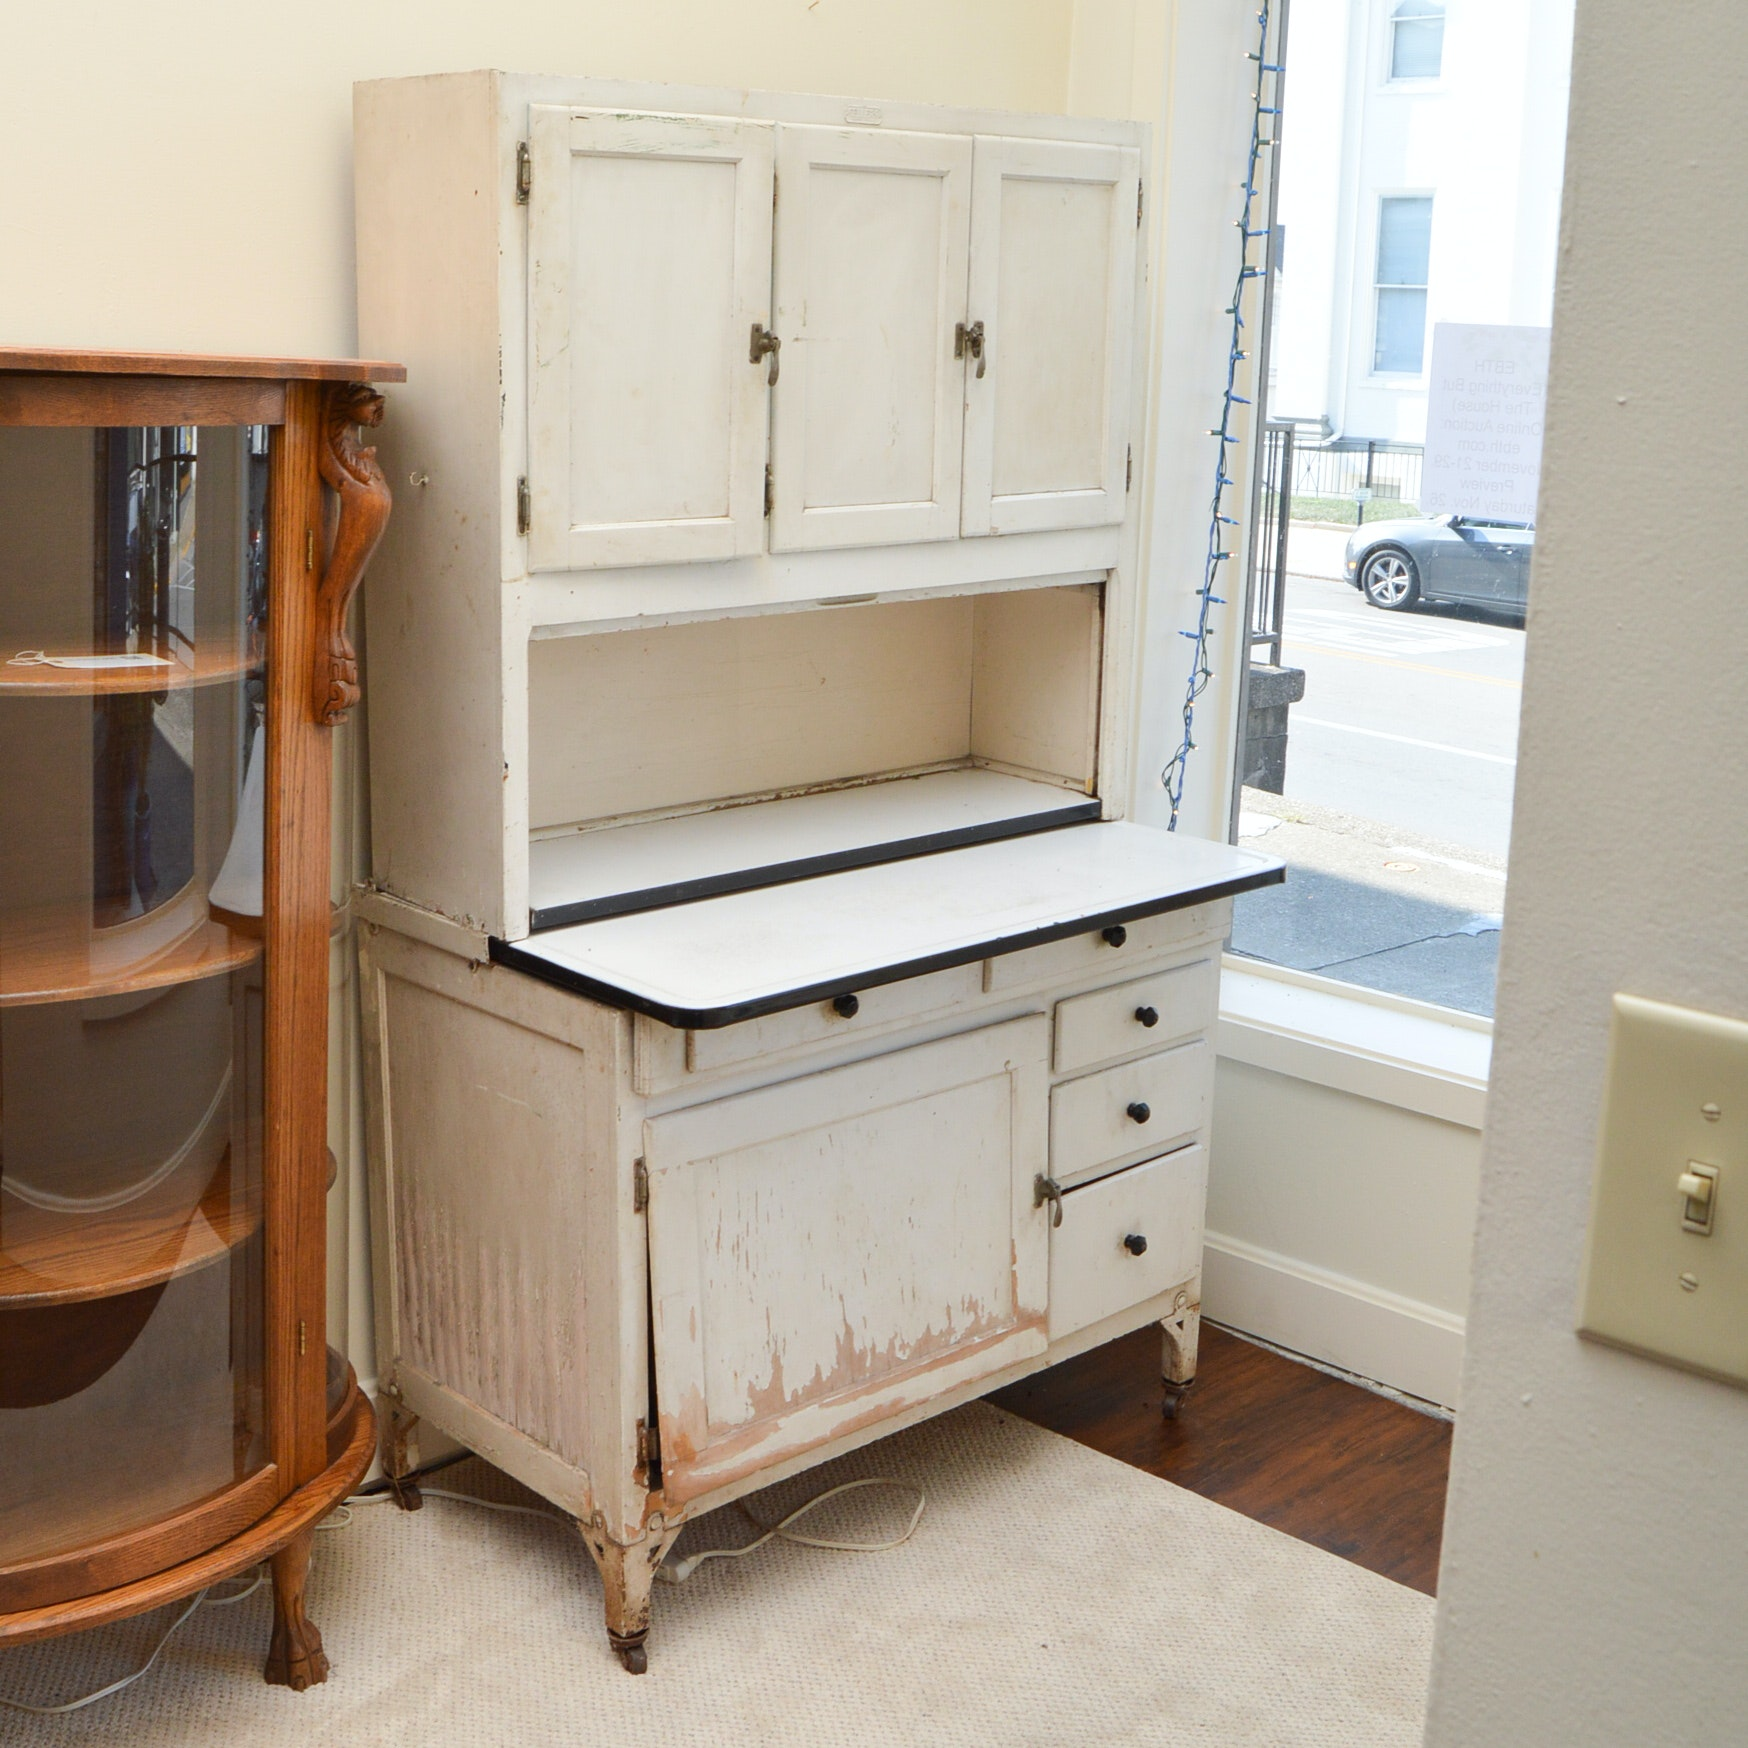 Sellers Kitchen Cabinet: Antique Hoosier Cabinet By Sellers